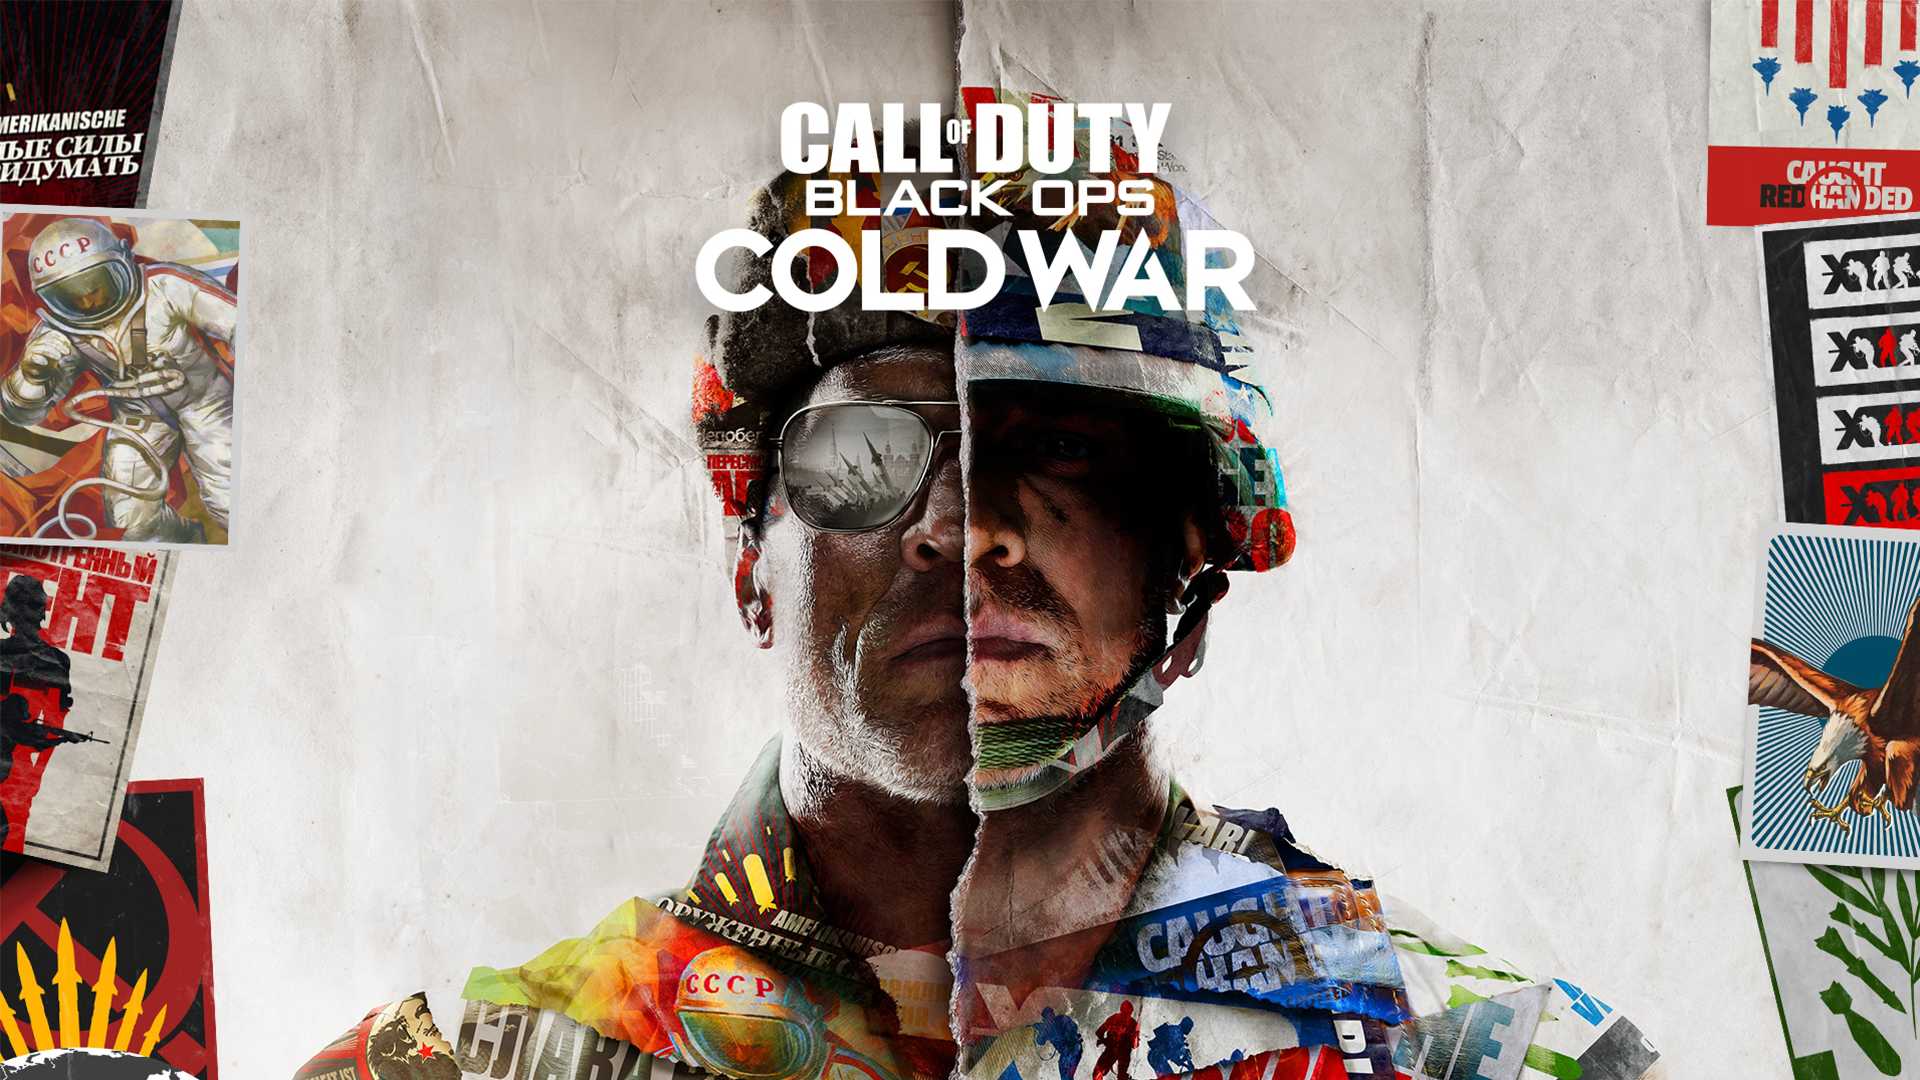 23 Call Of Duty Black Ops Cold War Hd Wallpapers Background Images Wallpaper Abyss